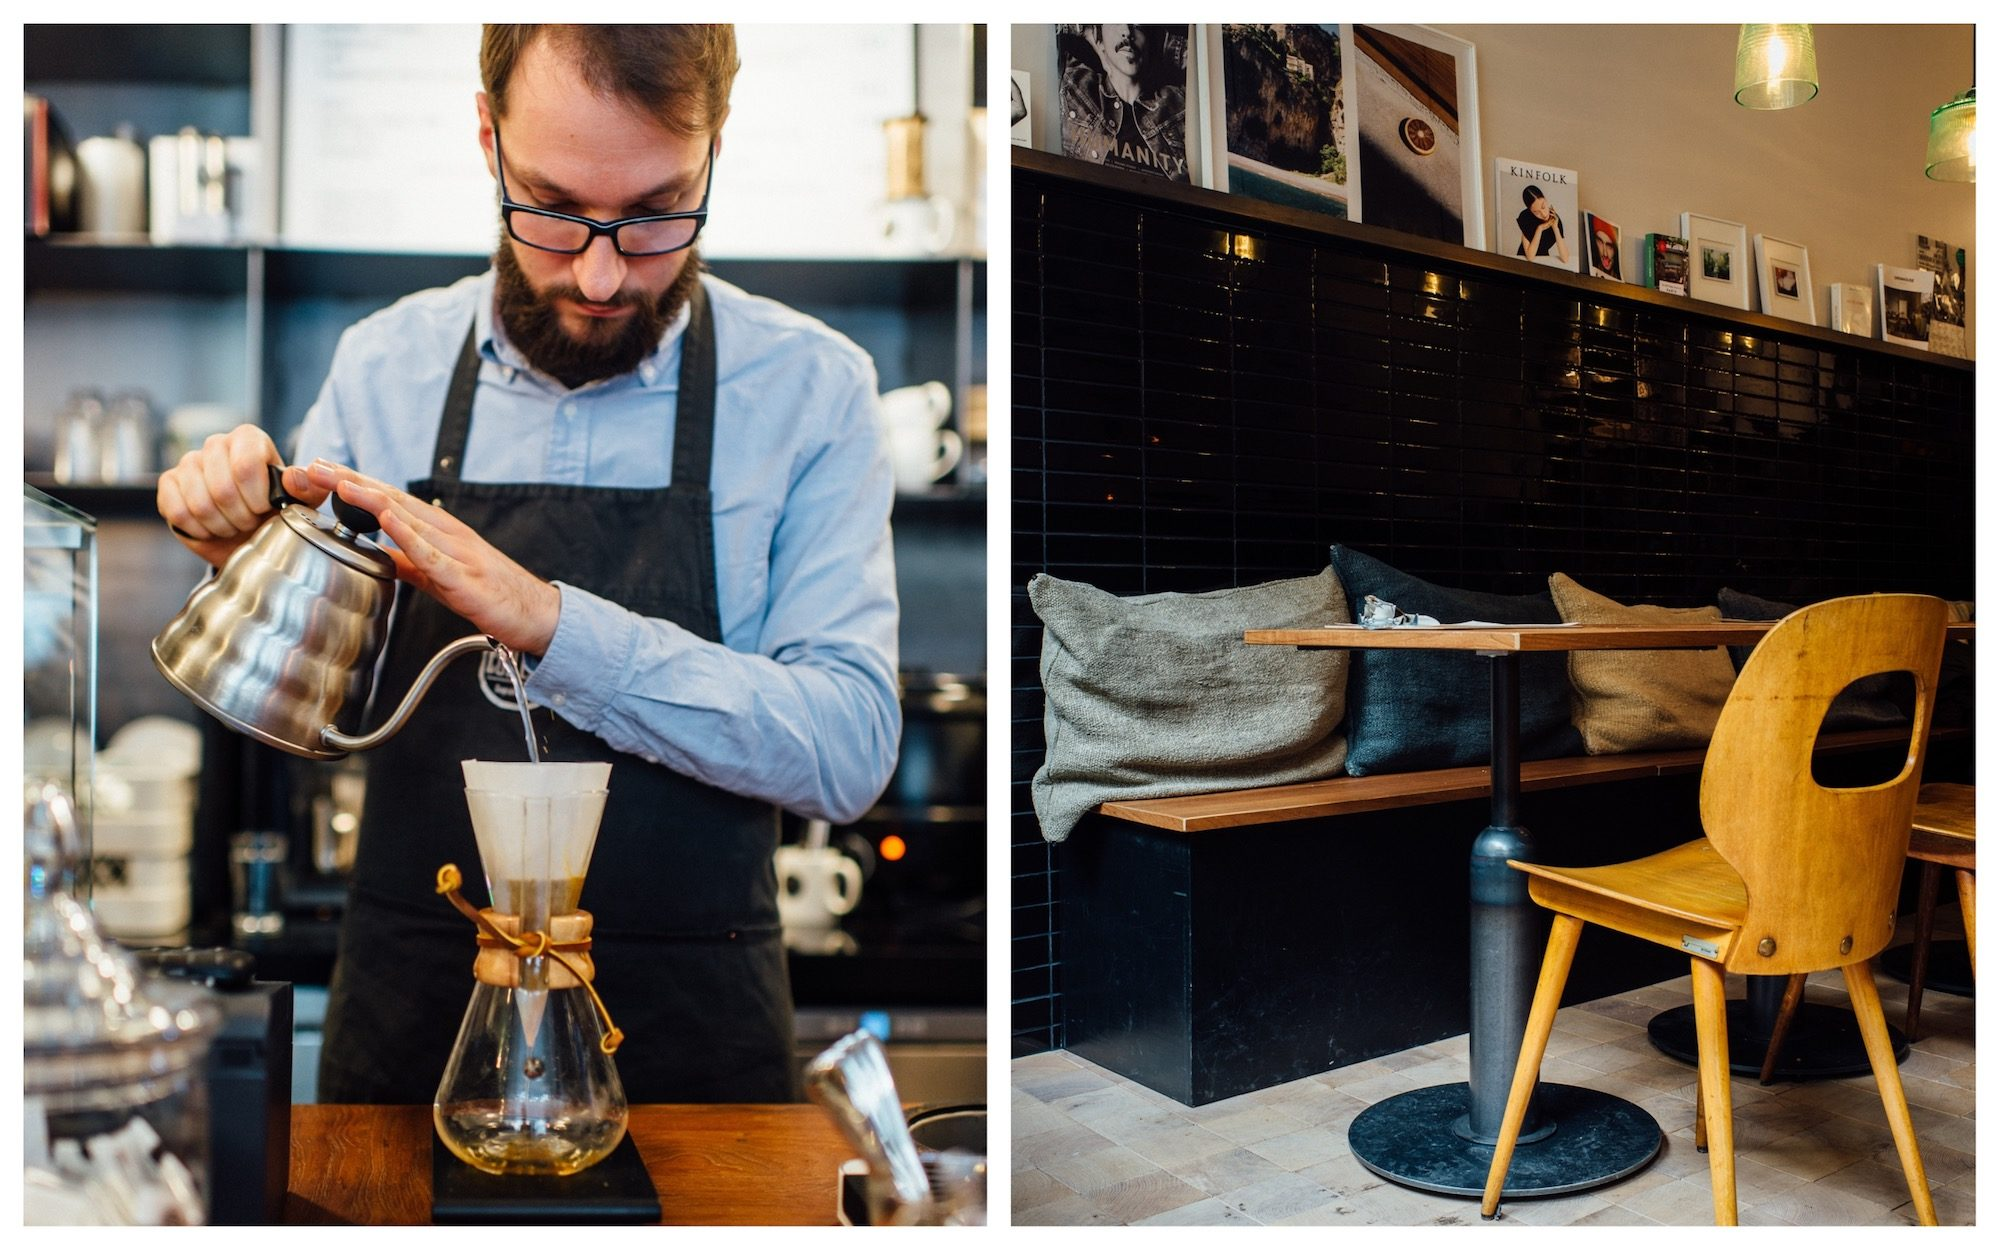 A barista wearing an apron and glasses, making coffee at a Paris coffee shop (left). Inside a cozy coffee shop with bistro table and Scandinavian style chairs (right).